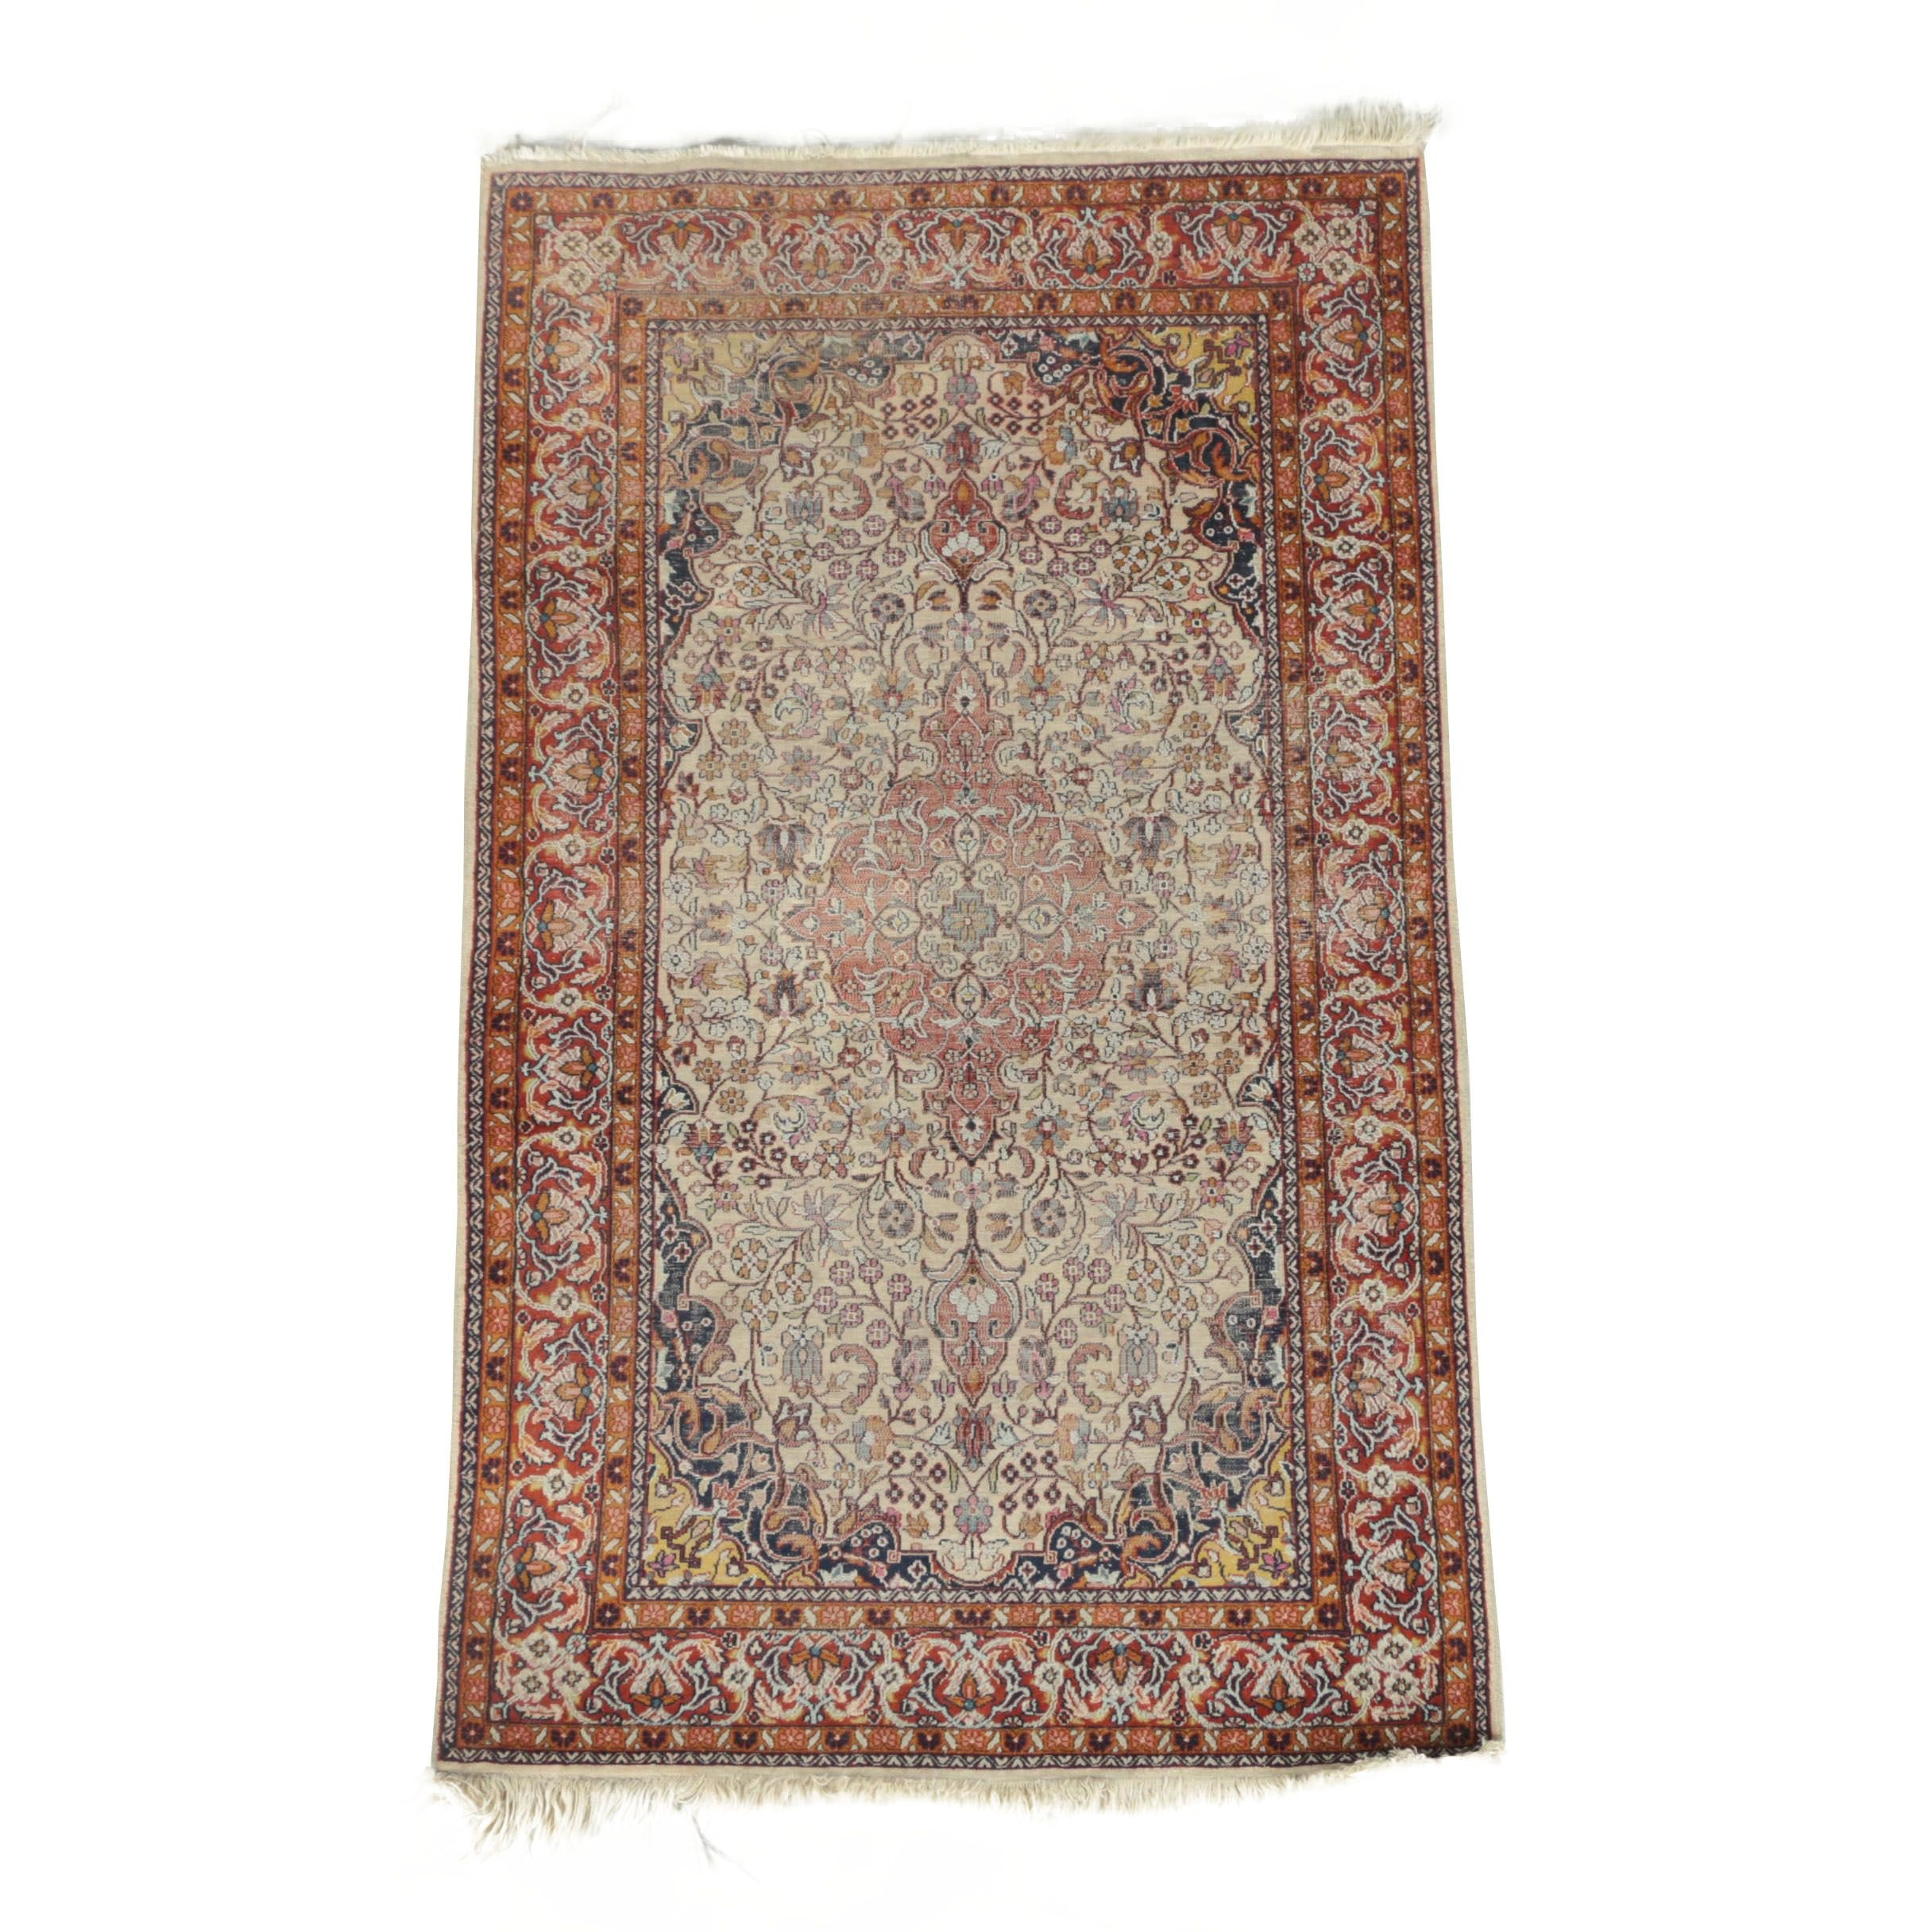 Vintage Hand-Knotted Persian Kashan Wool Accent Rug